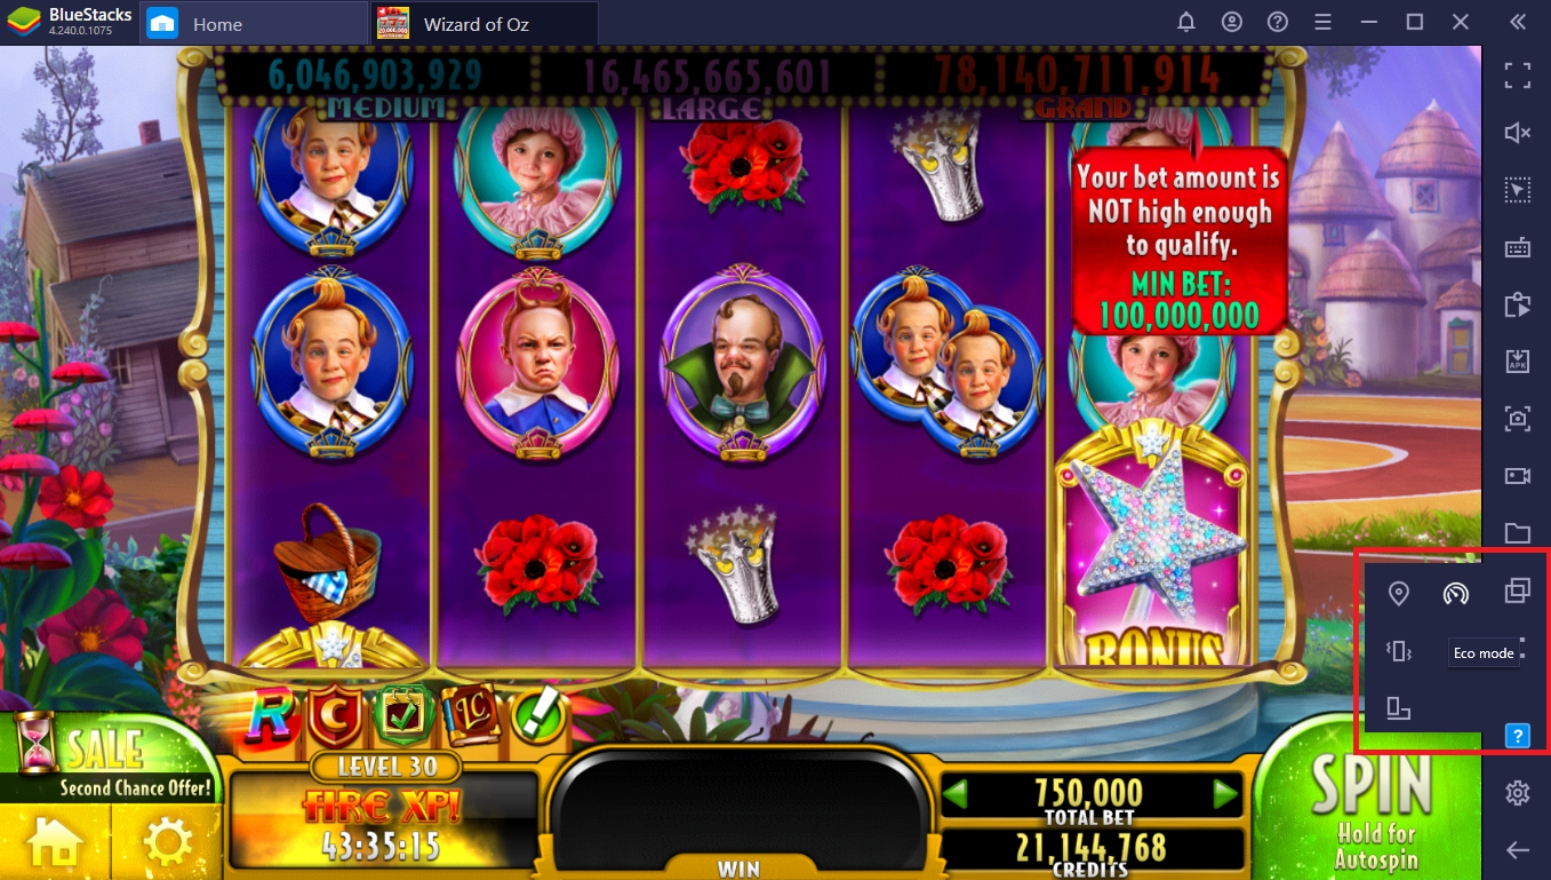 How to Play Wizard Of Oz Casino on PC With BlueStacks